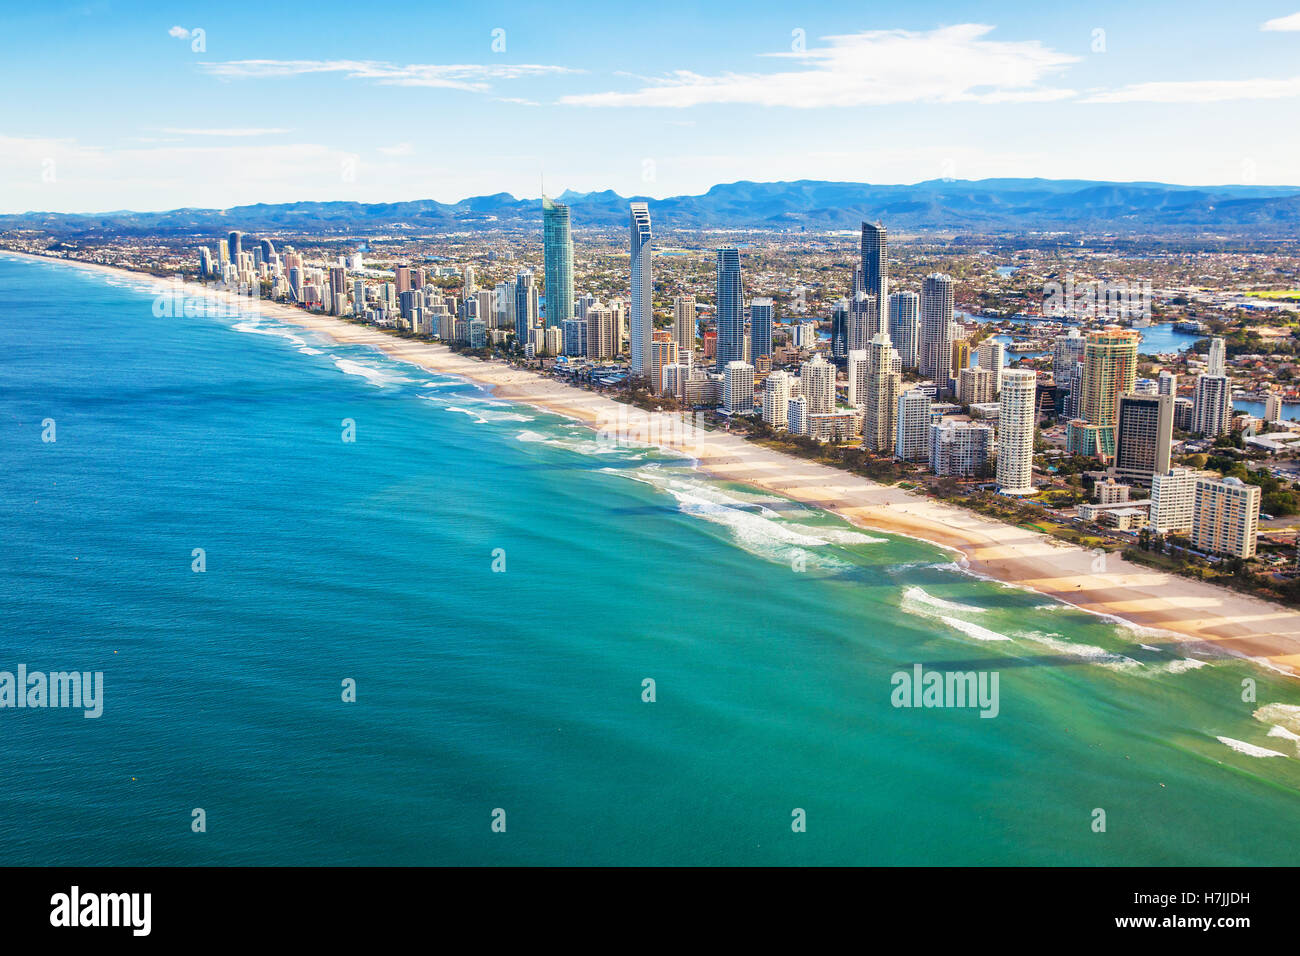 Aerial view of Surfers Paradise on the Gold Coast, Queensland, Australia - Stock Image